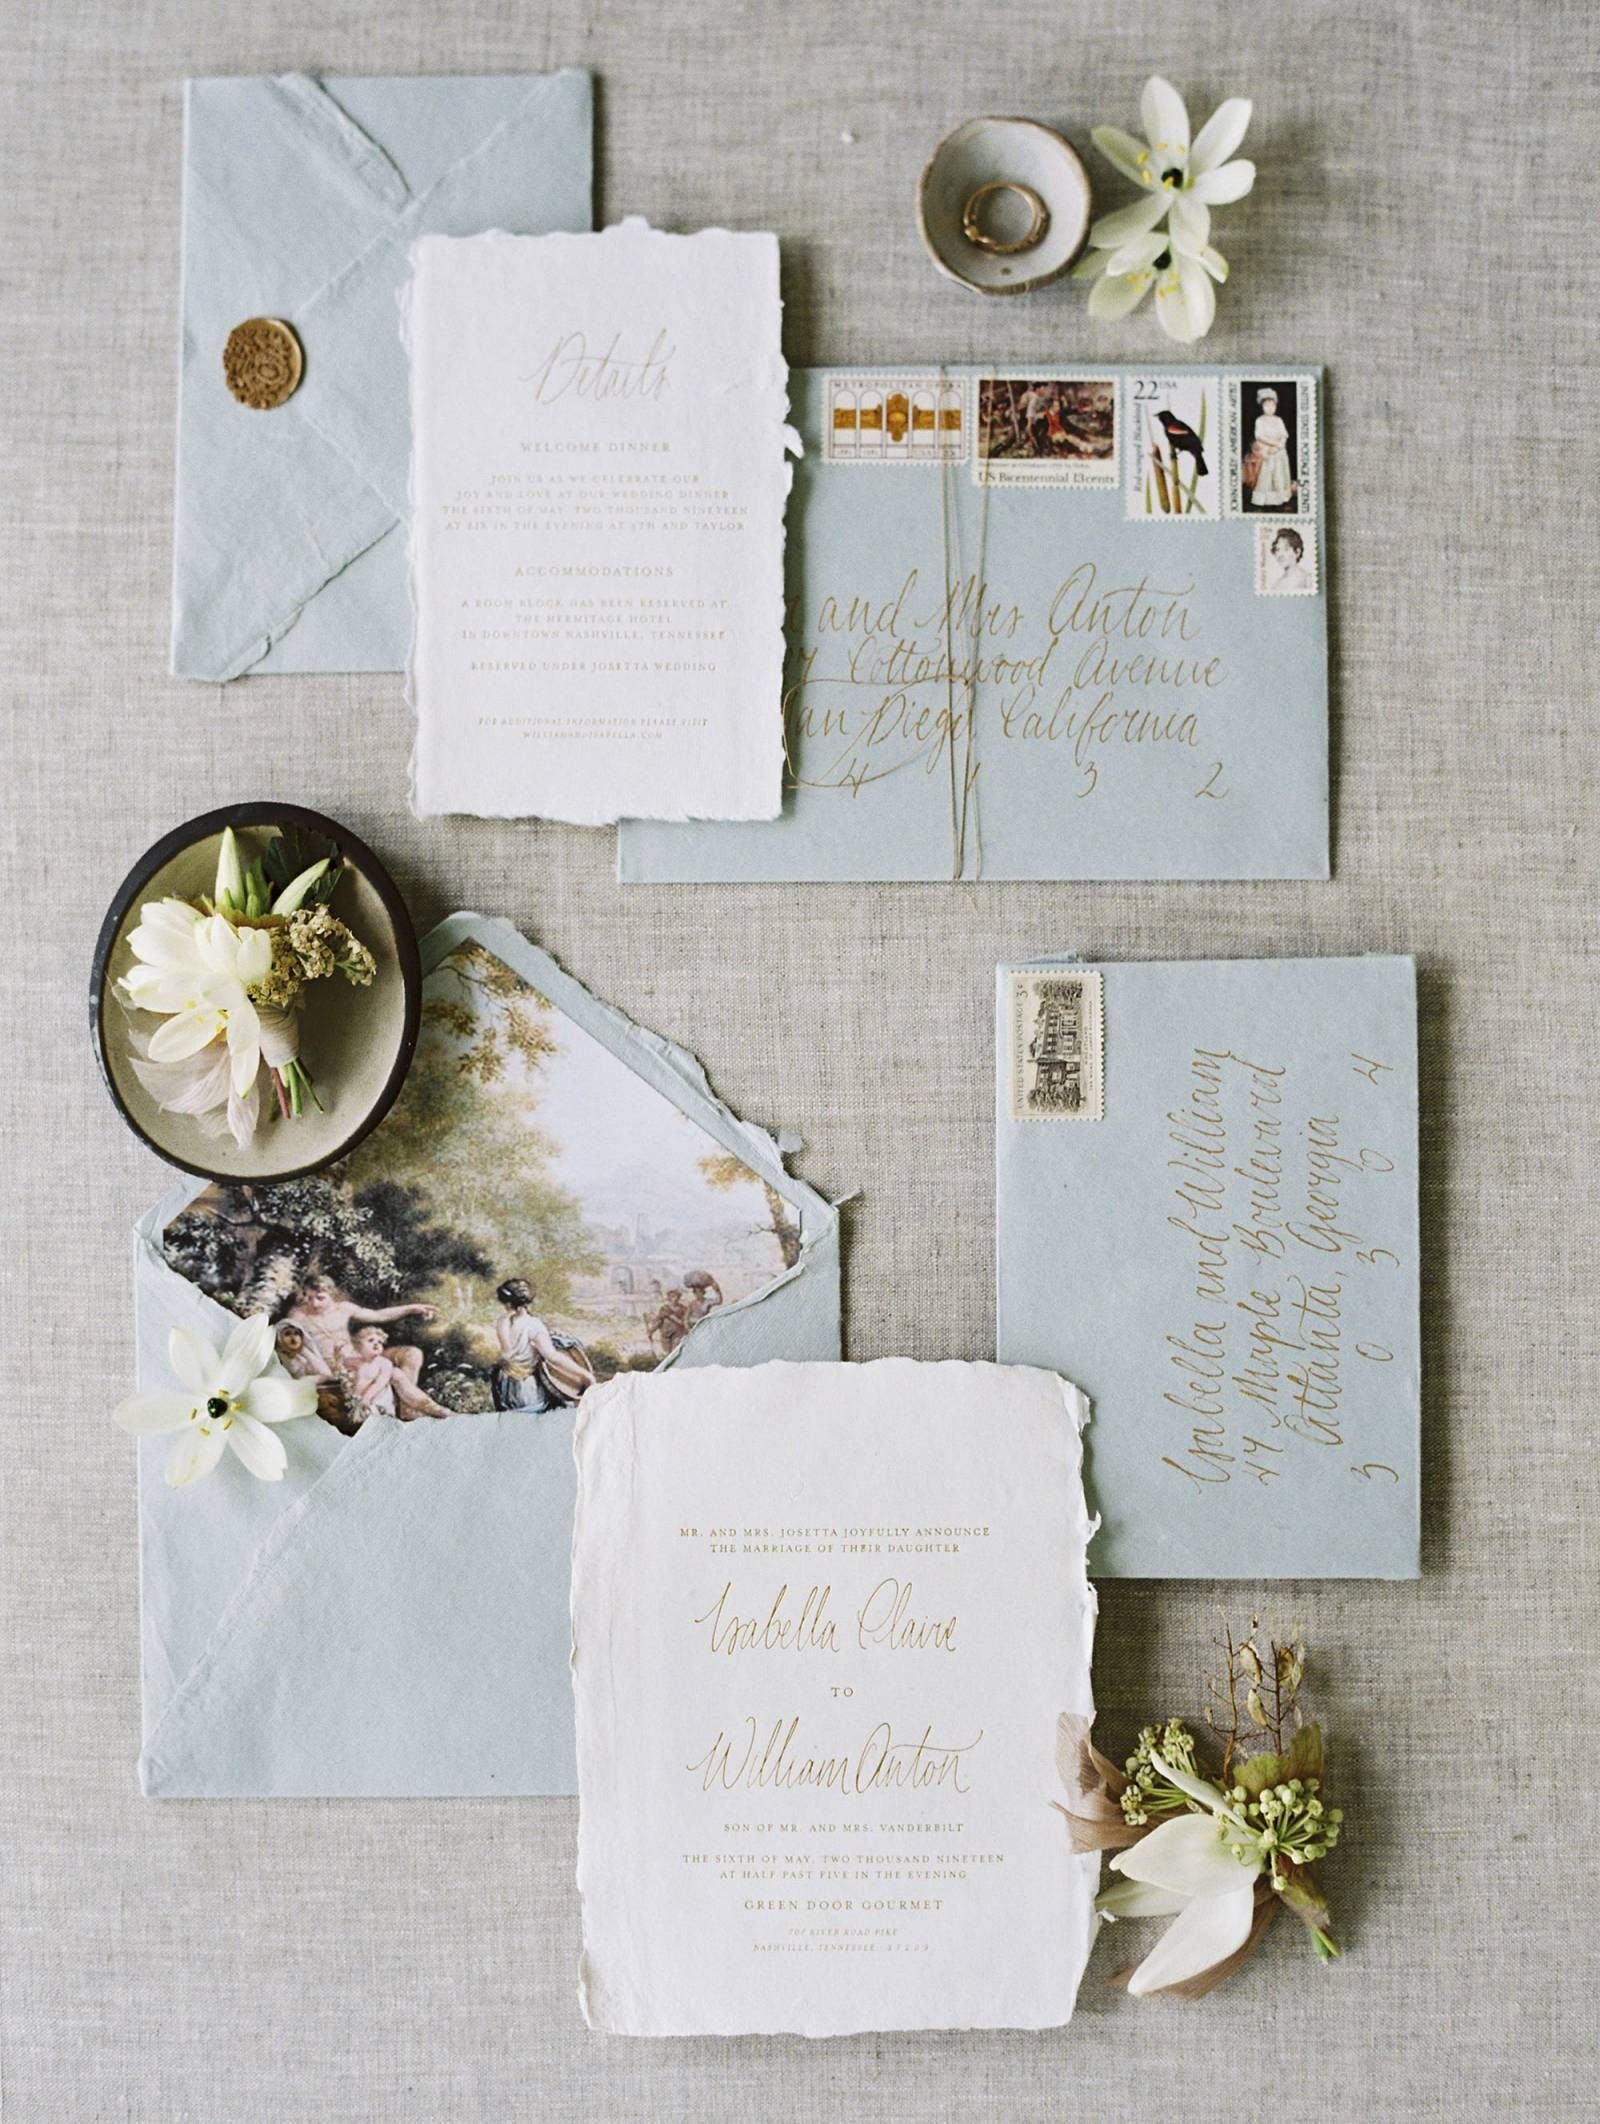 Paper Files No 1 Beautiful Wedding Stationery You Should Consider For Your Wedding Invitations Romantic Blue Wedding Stationery Beautiful Wedding Stationery